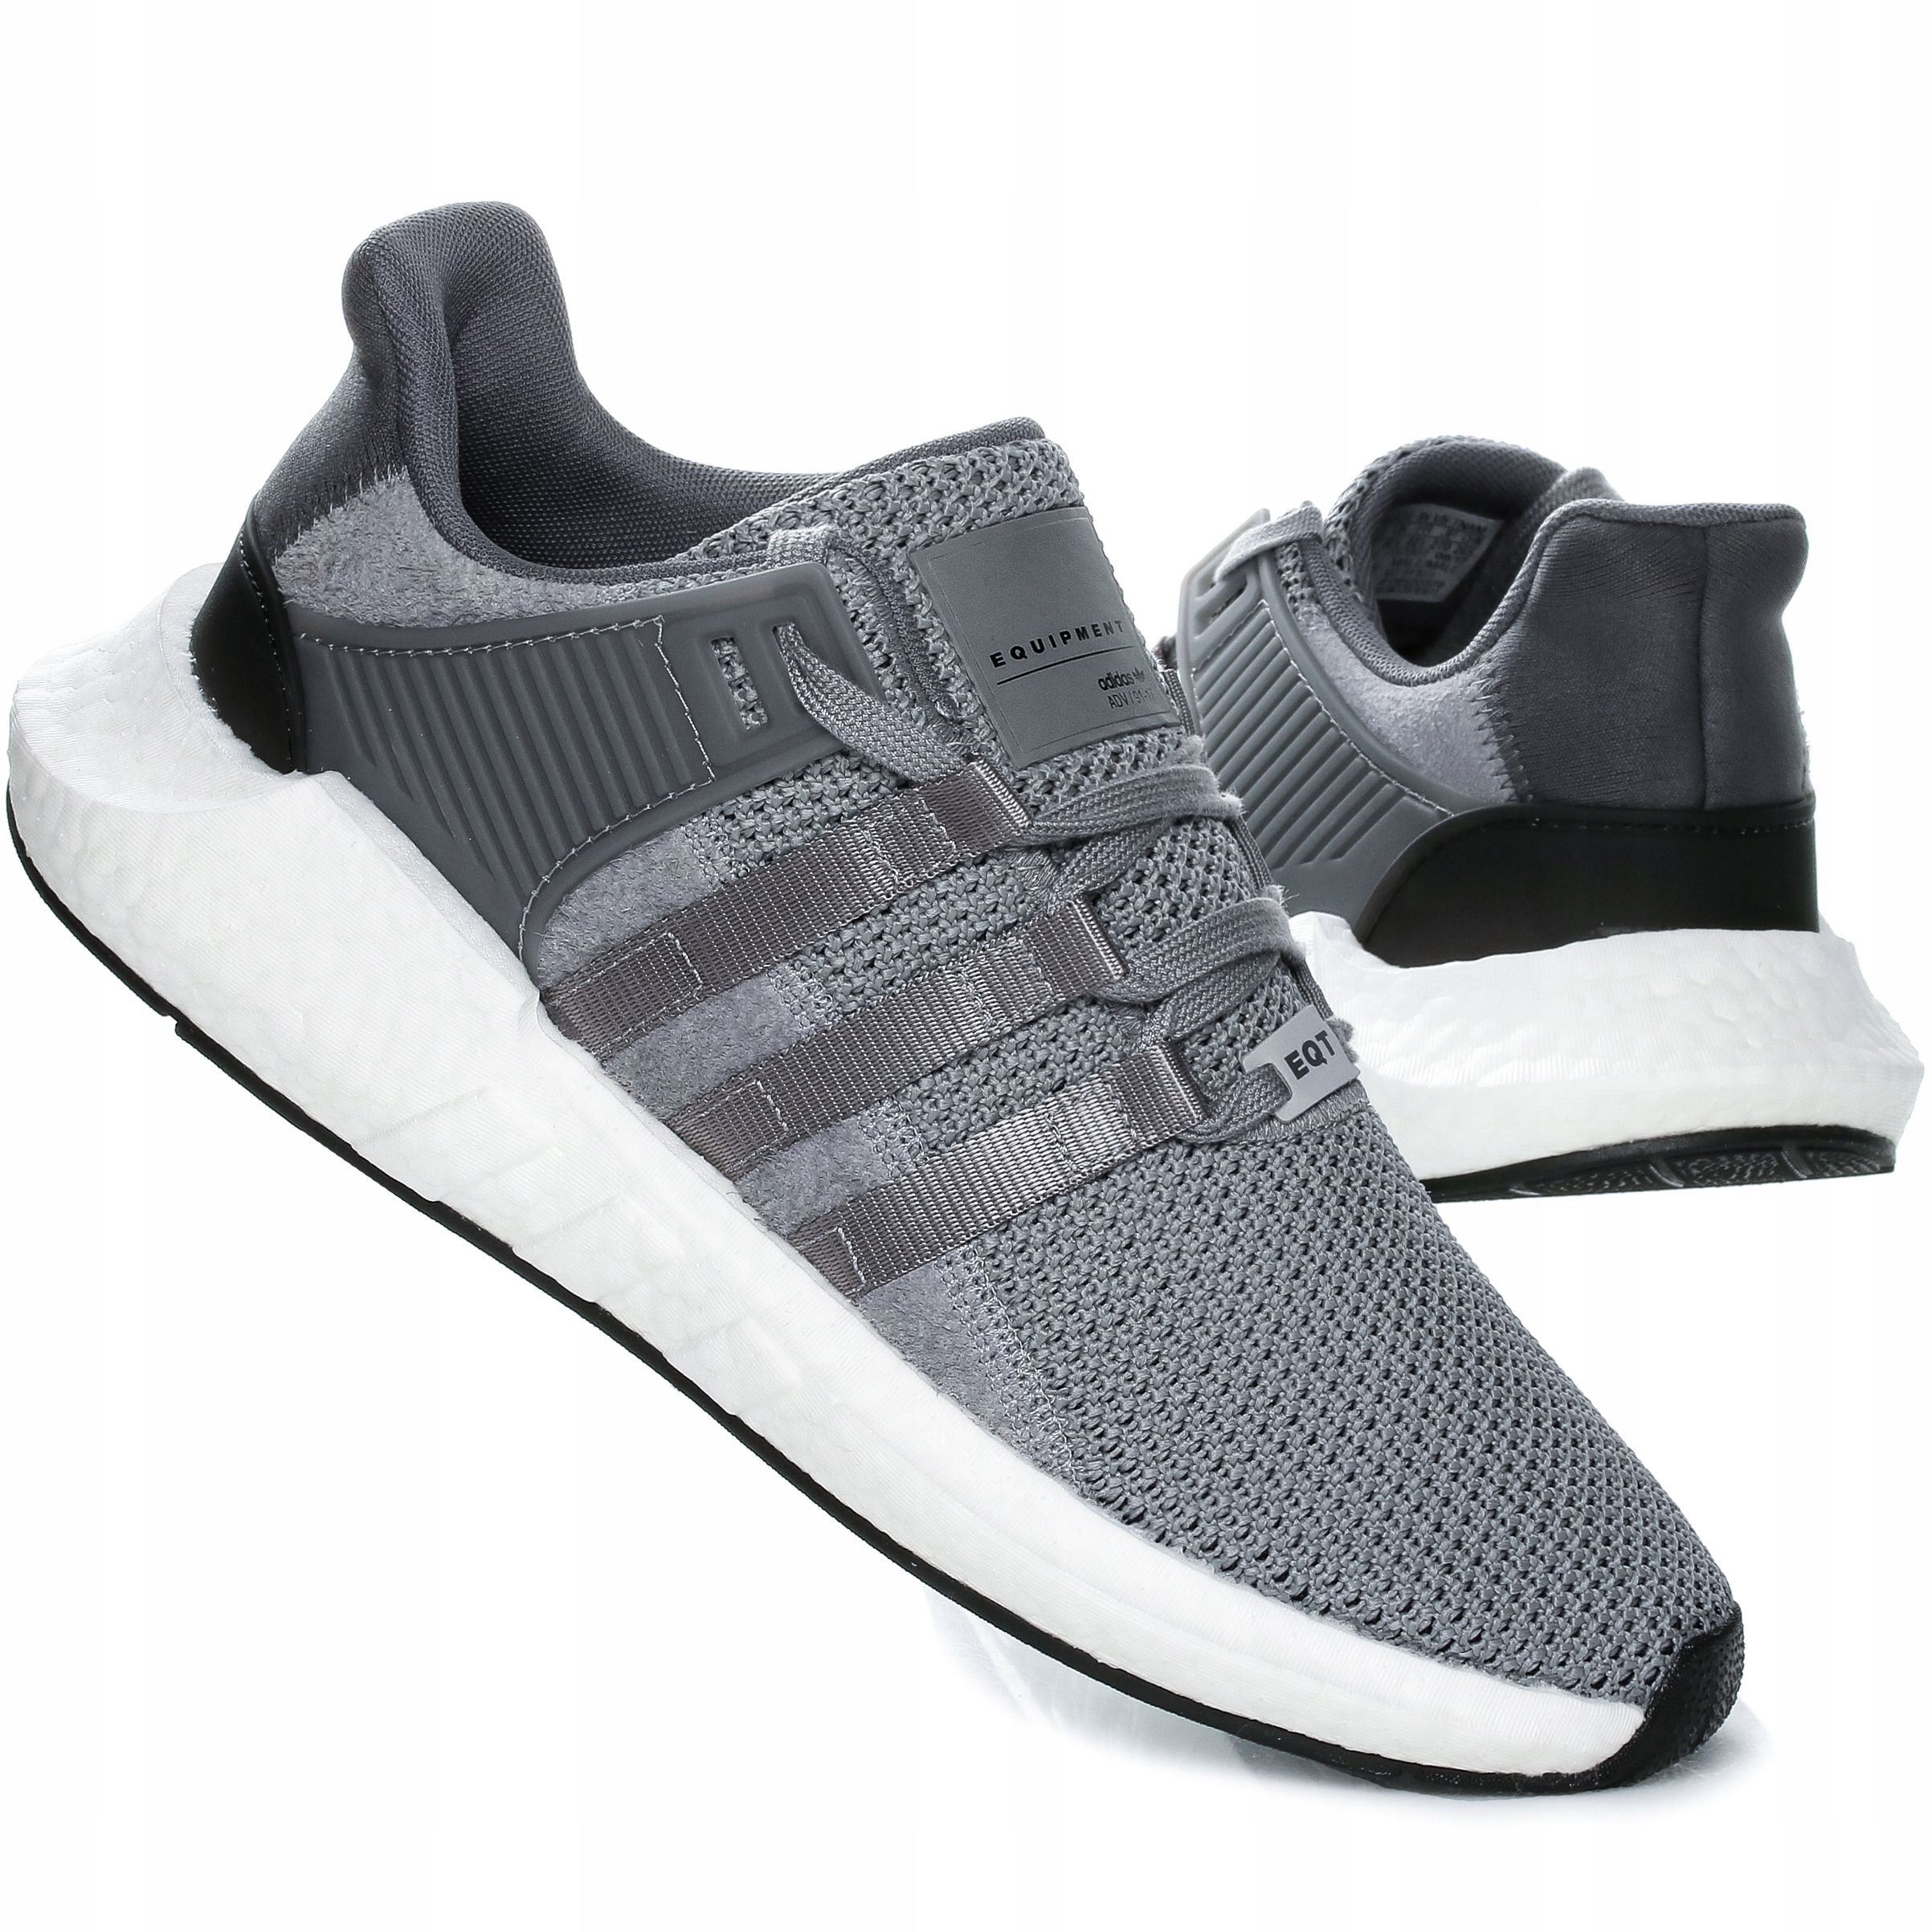 cheap for discount 82764 476da Buty Adidas Eqt Support 93/17 BY9511 BOOST